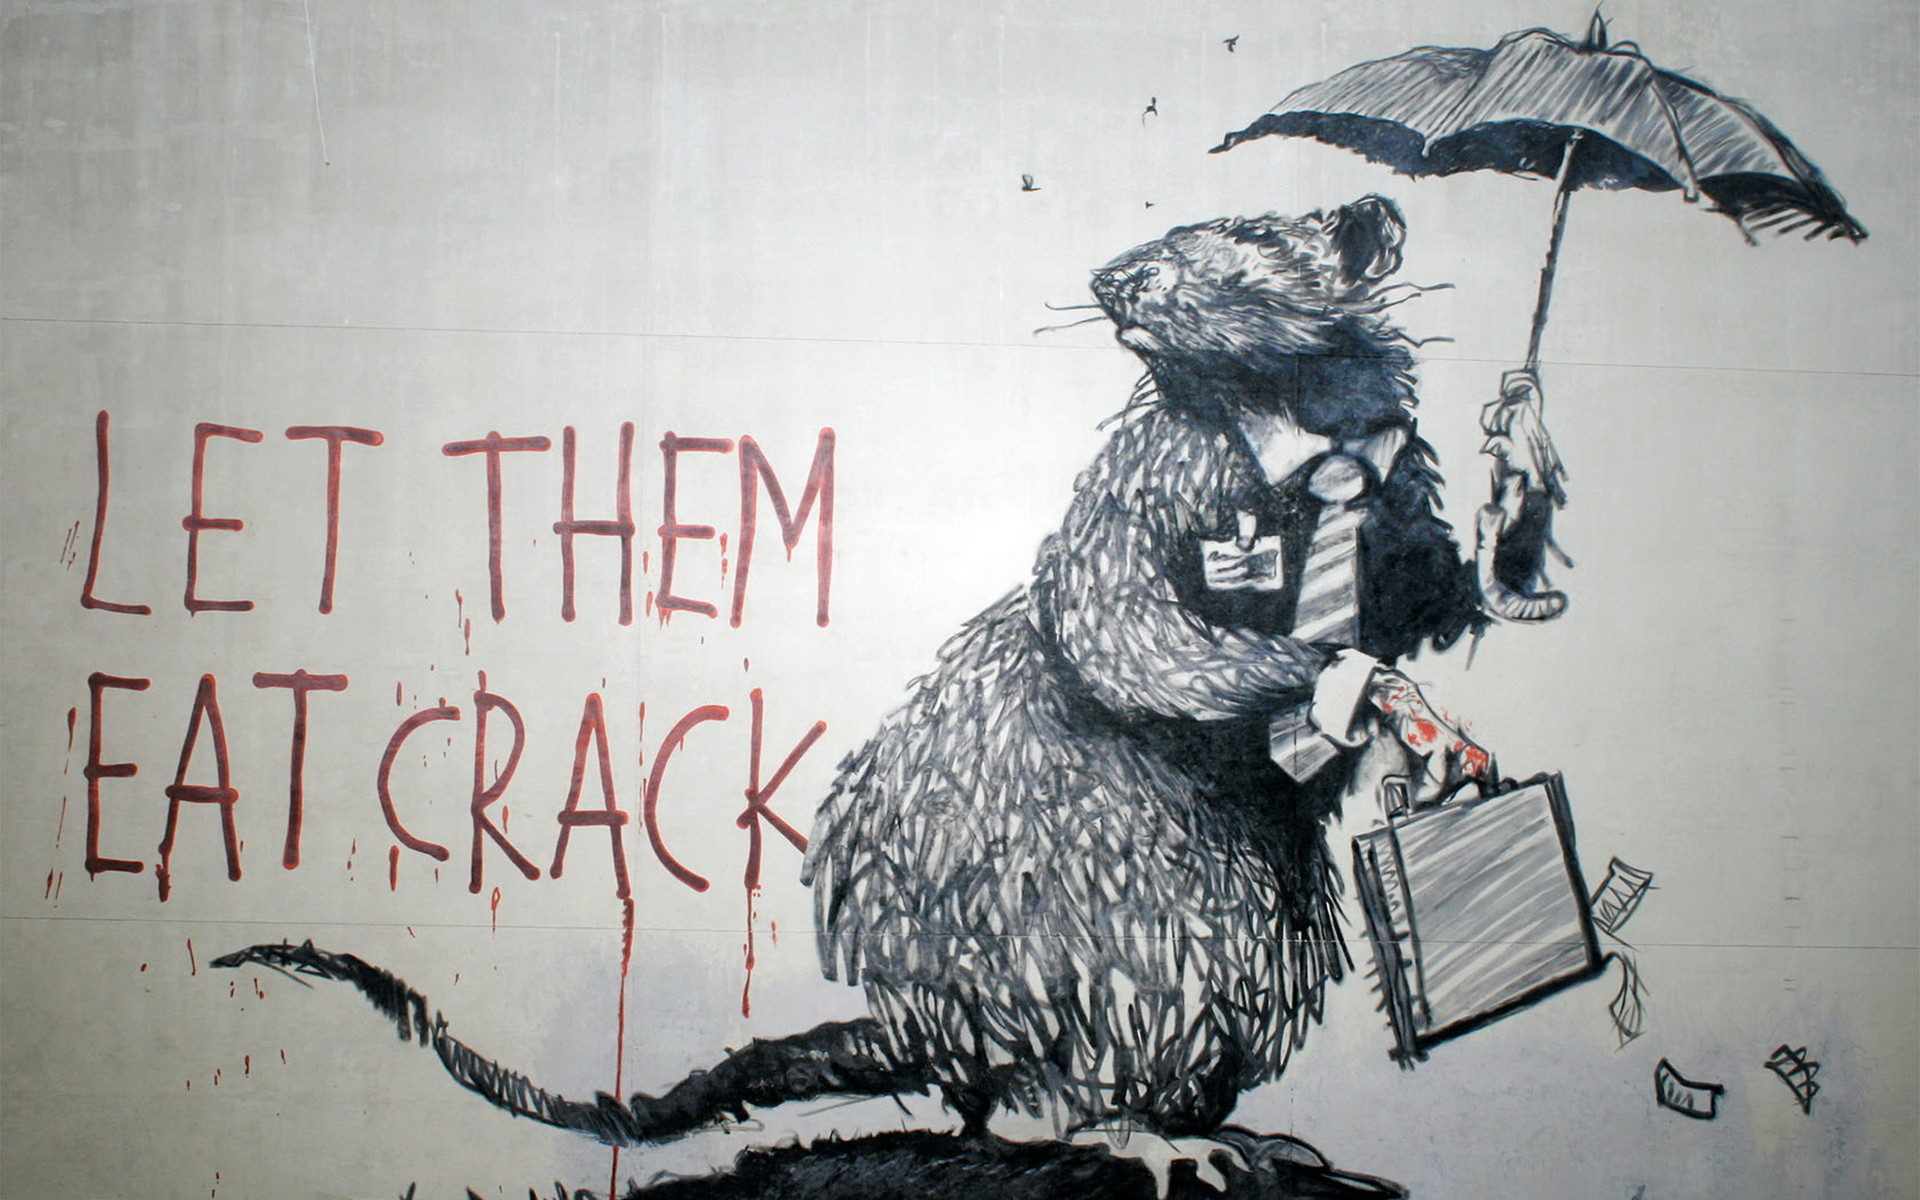 Banksy Wallpaper 31 eat crack.jpg (1920×1200)